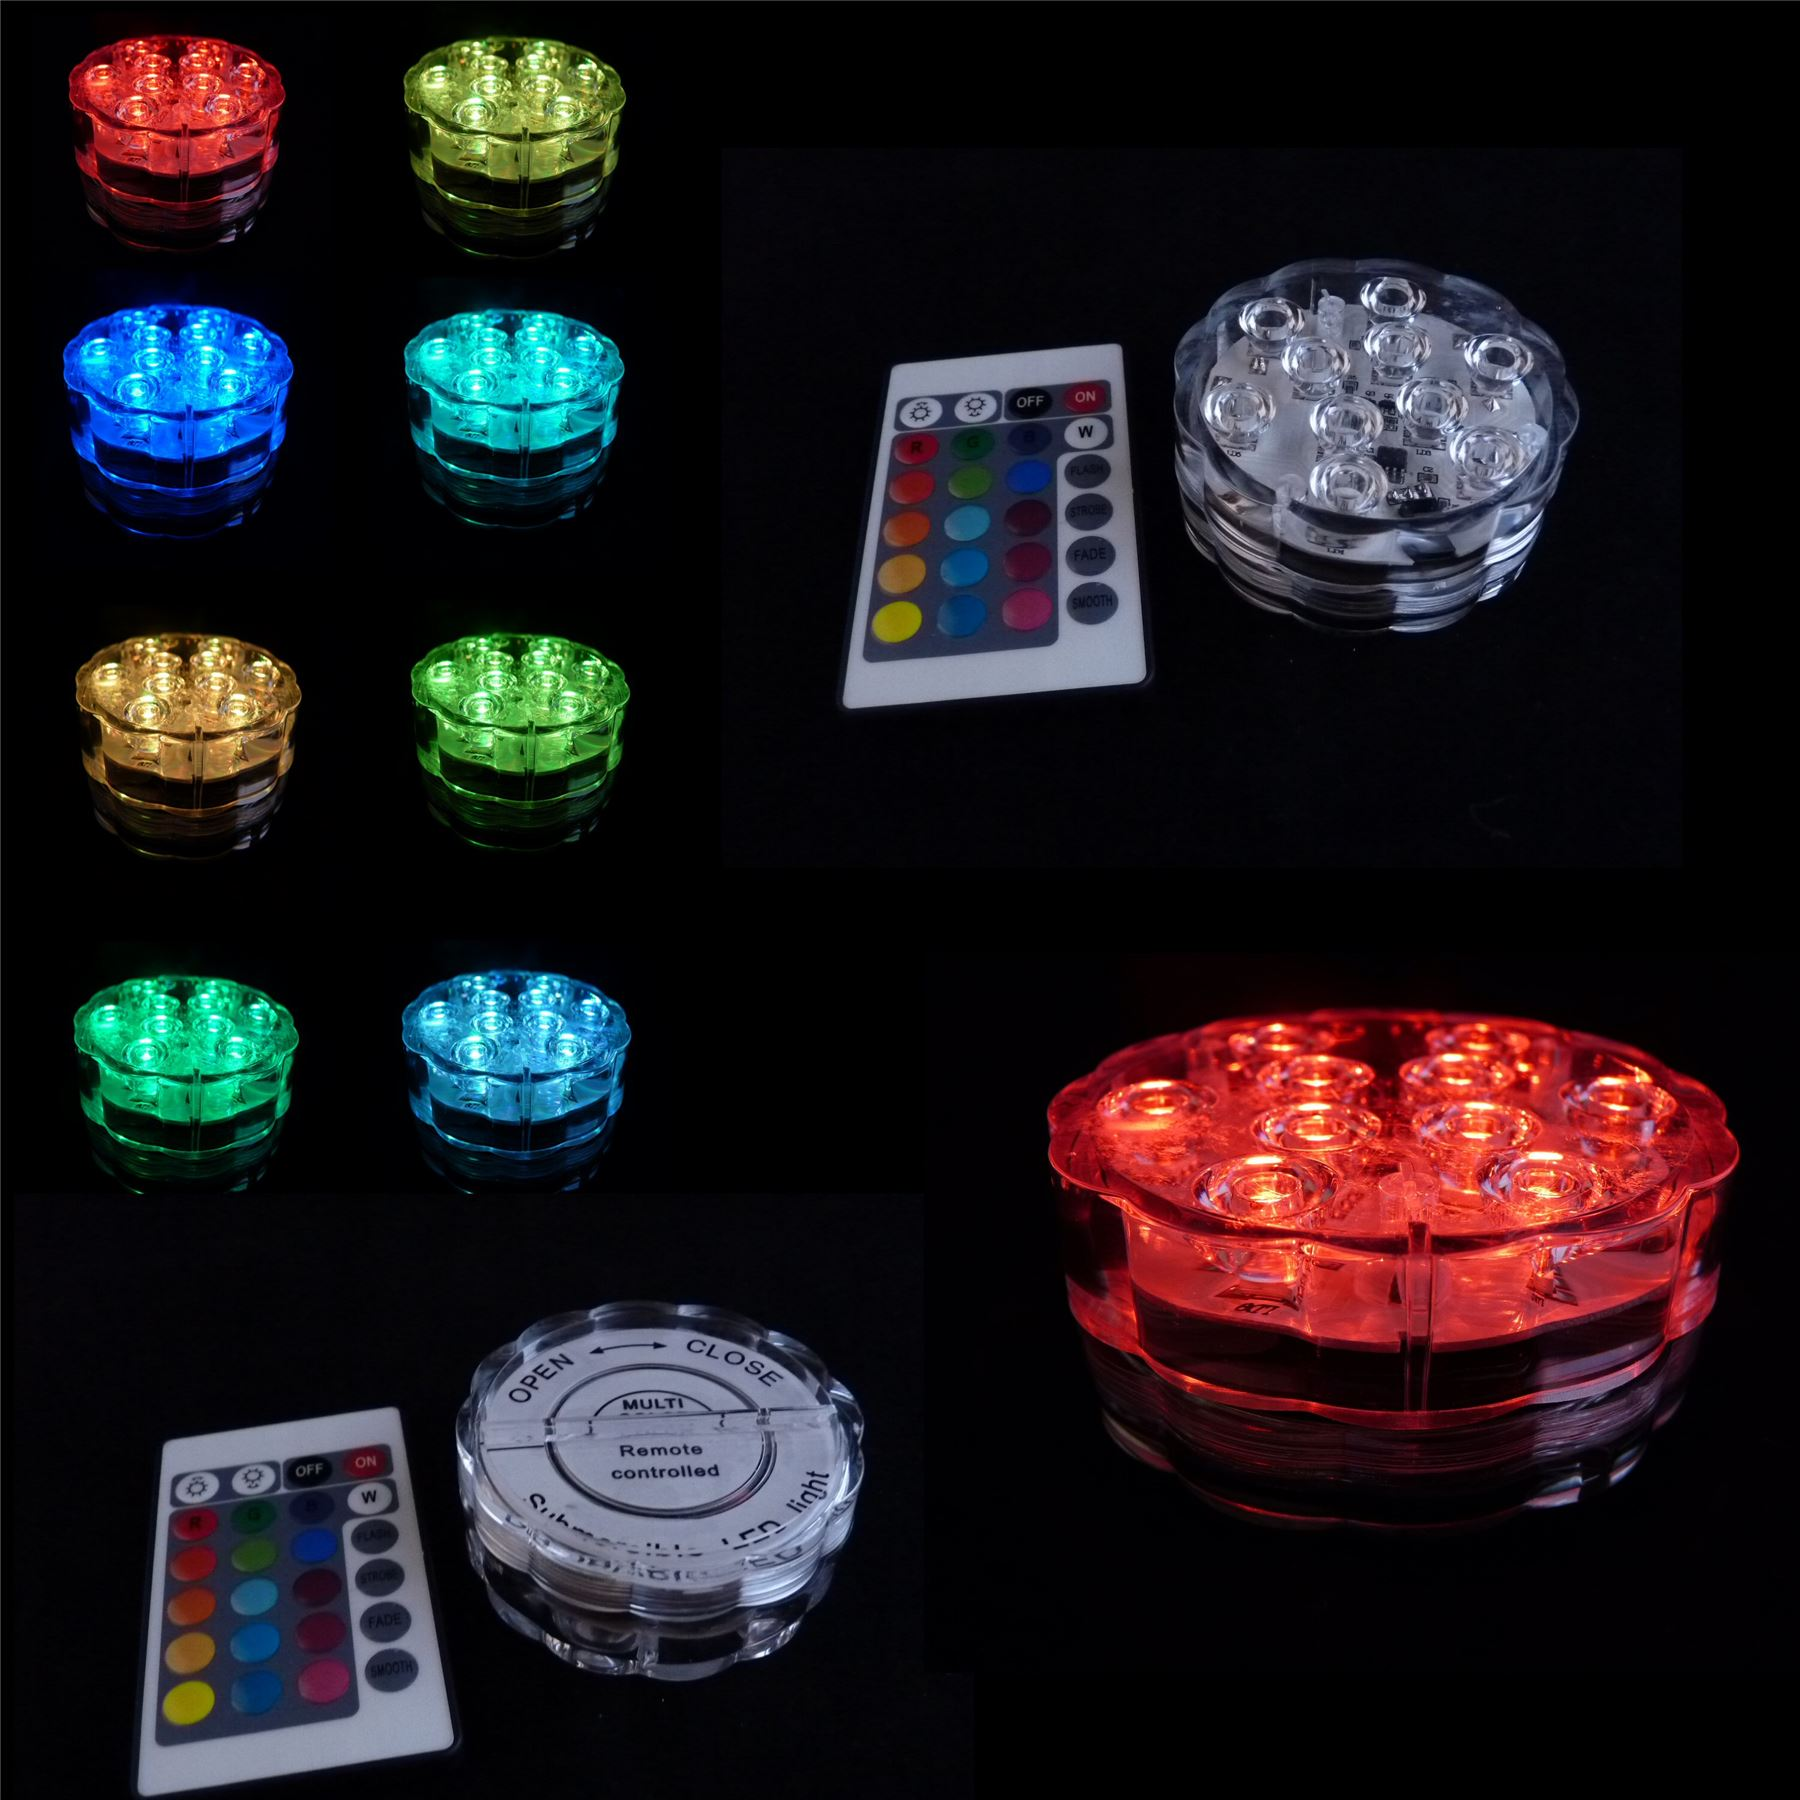 10-Multicolore-LED-BASE-TELECOMANDO-VASO-FESTA-MATRIMONIO-AQUA-CRYSTAL